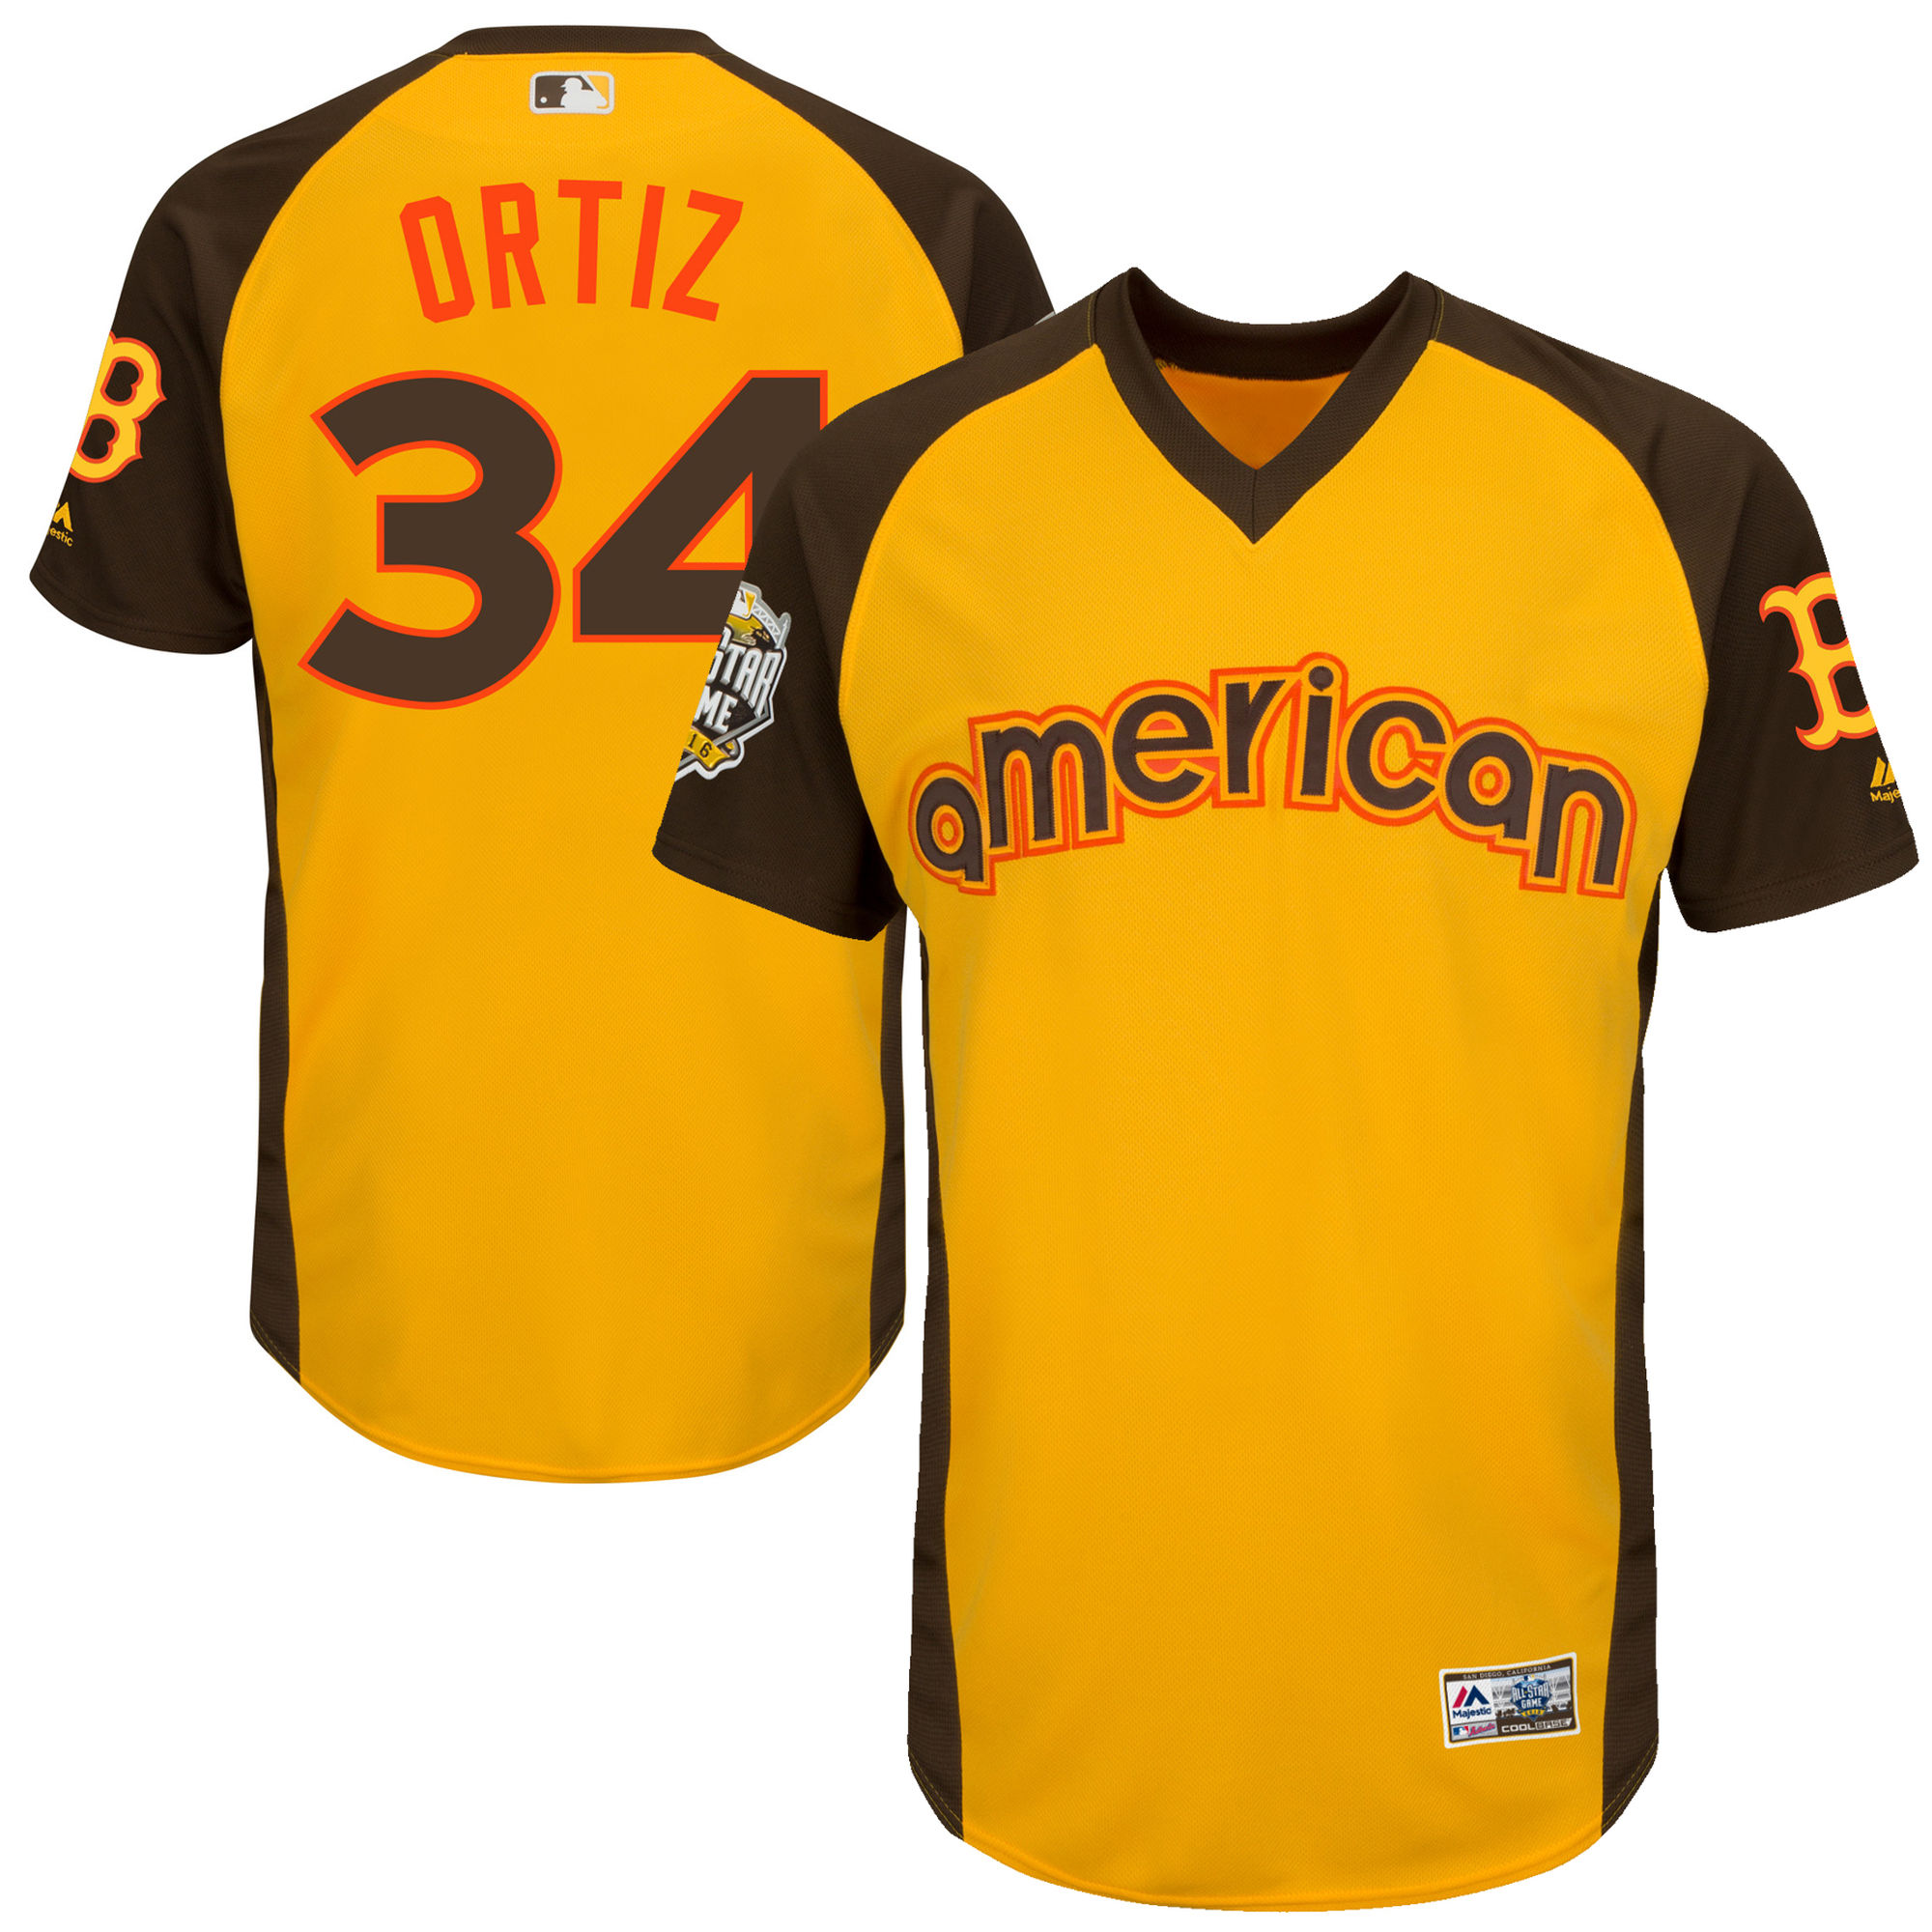 Red Sox 34 David Ortiz Yellow Youth 2016 All-Star Game Cool Base Batting Practice Player Jersey